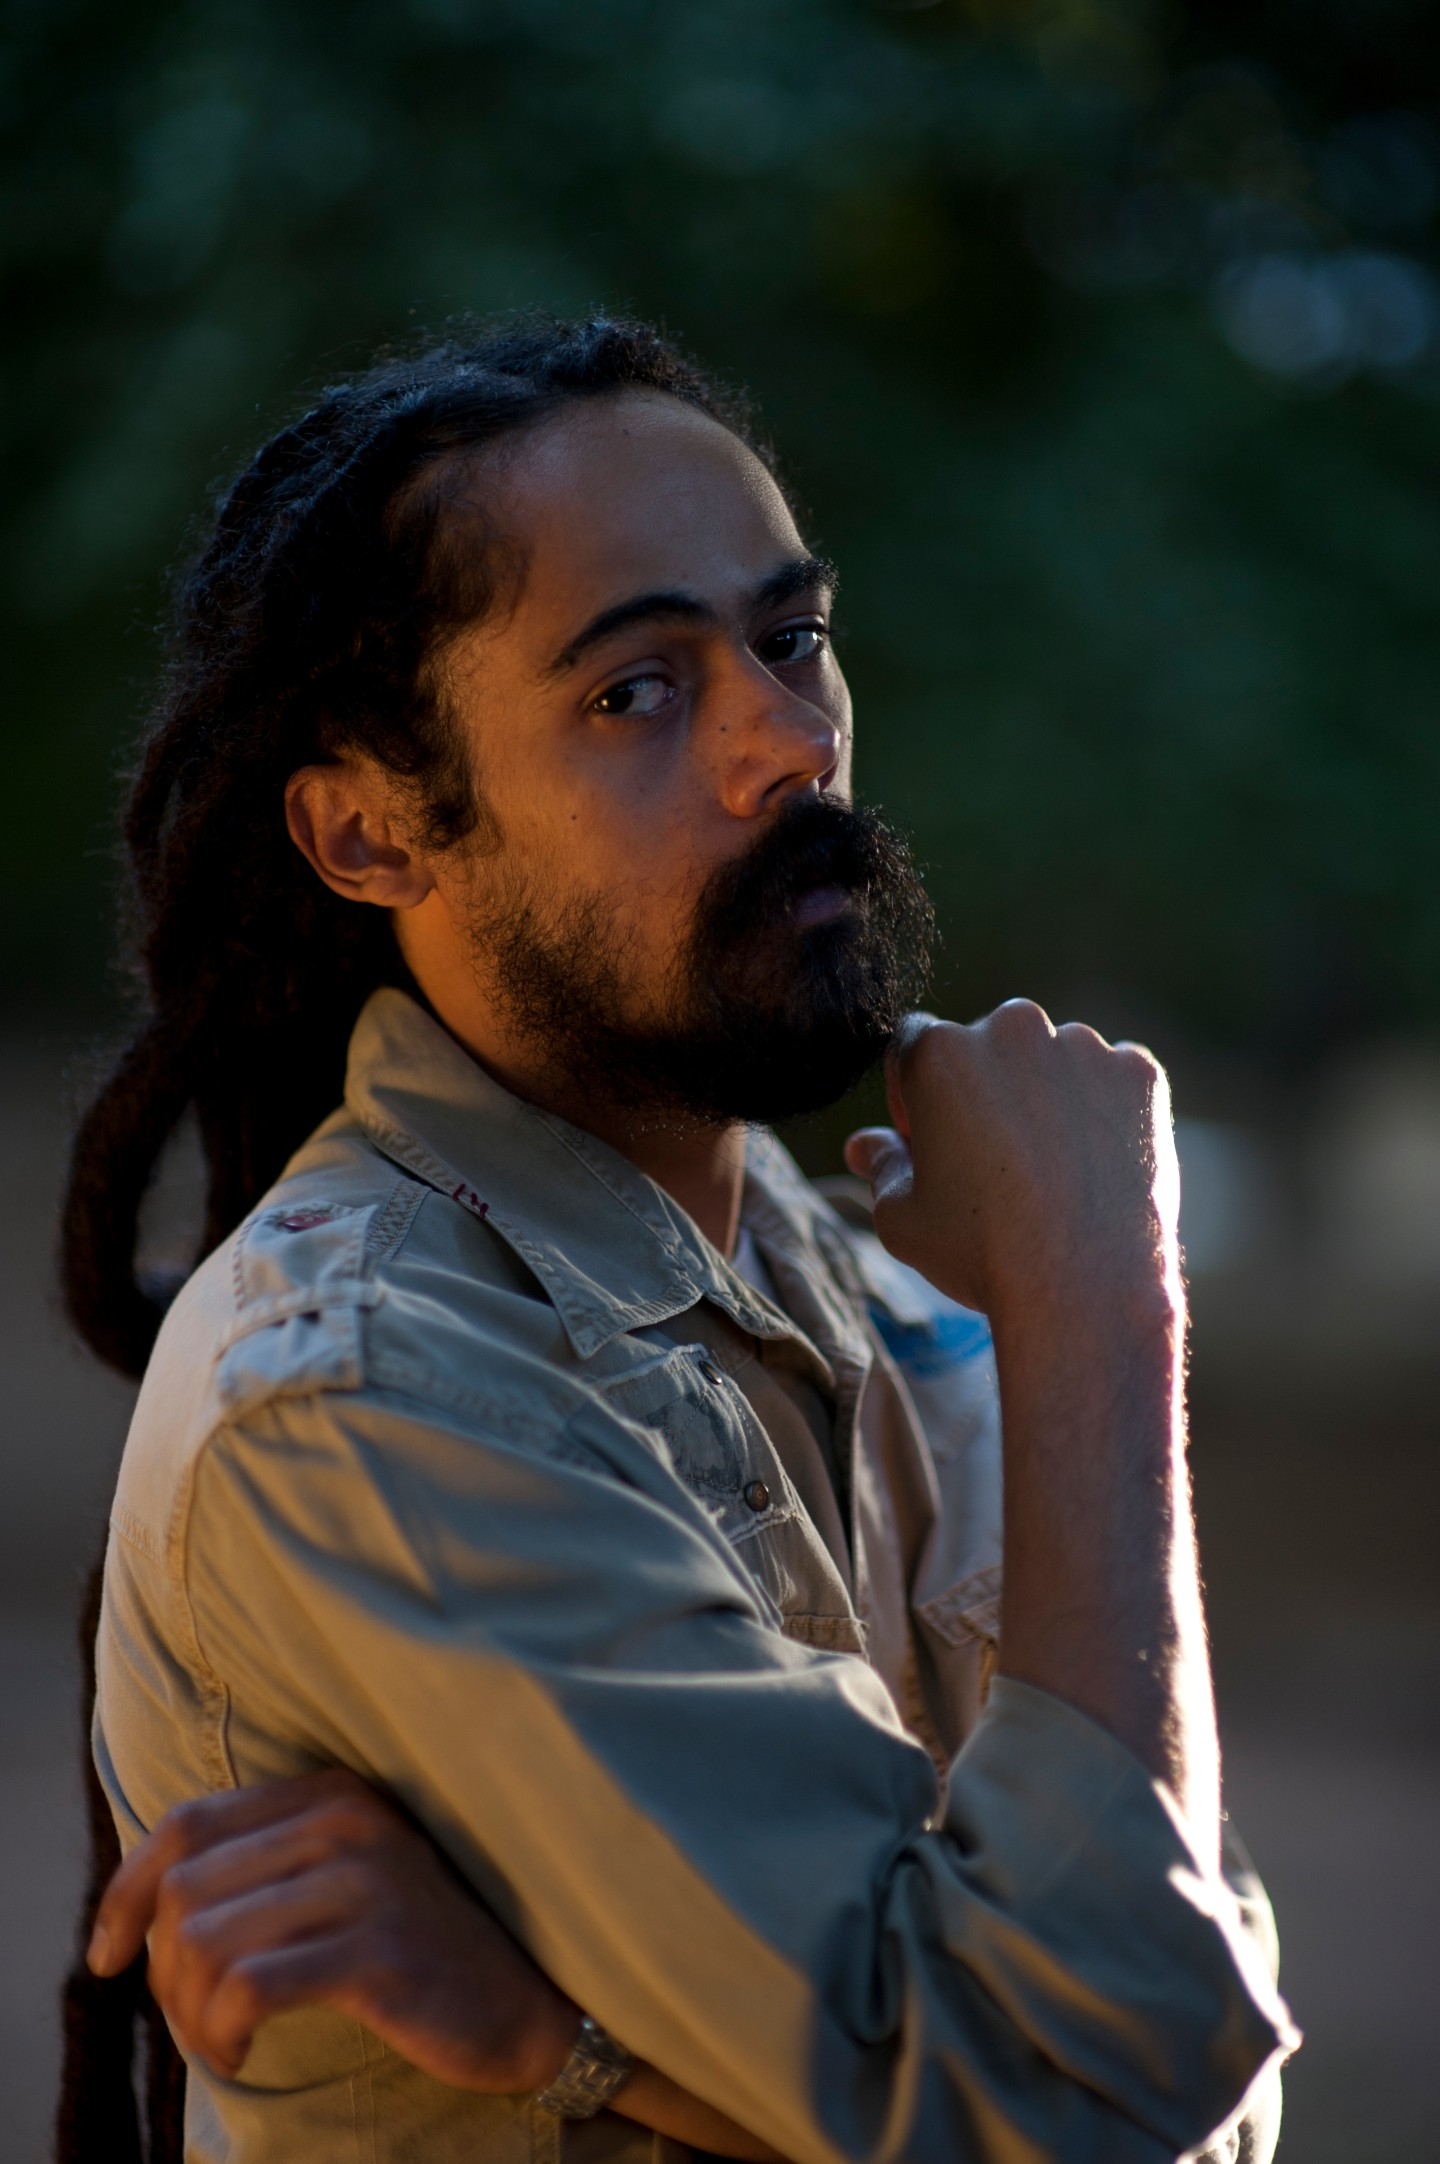 Damian marley shares roar video details upcoming stony hill damian marley shares roar video details upcoming istony hill thecheapjerseys Gallery